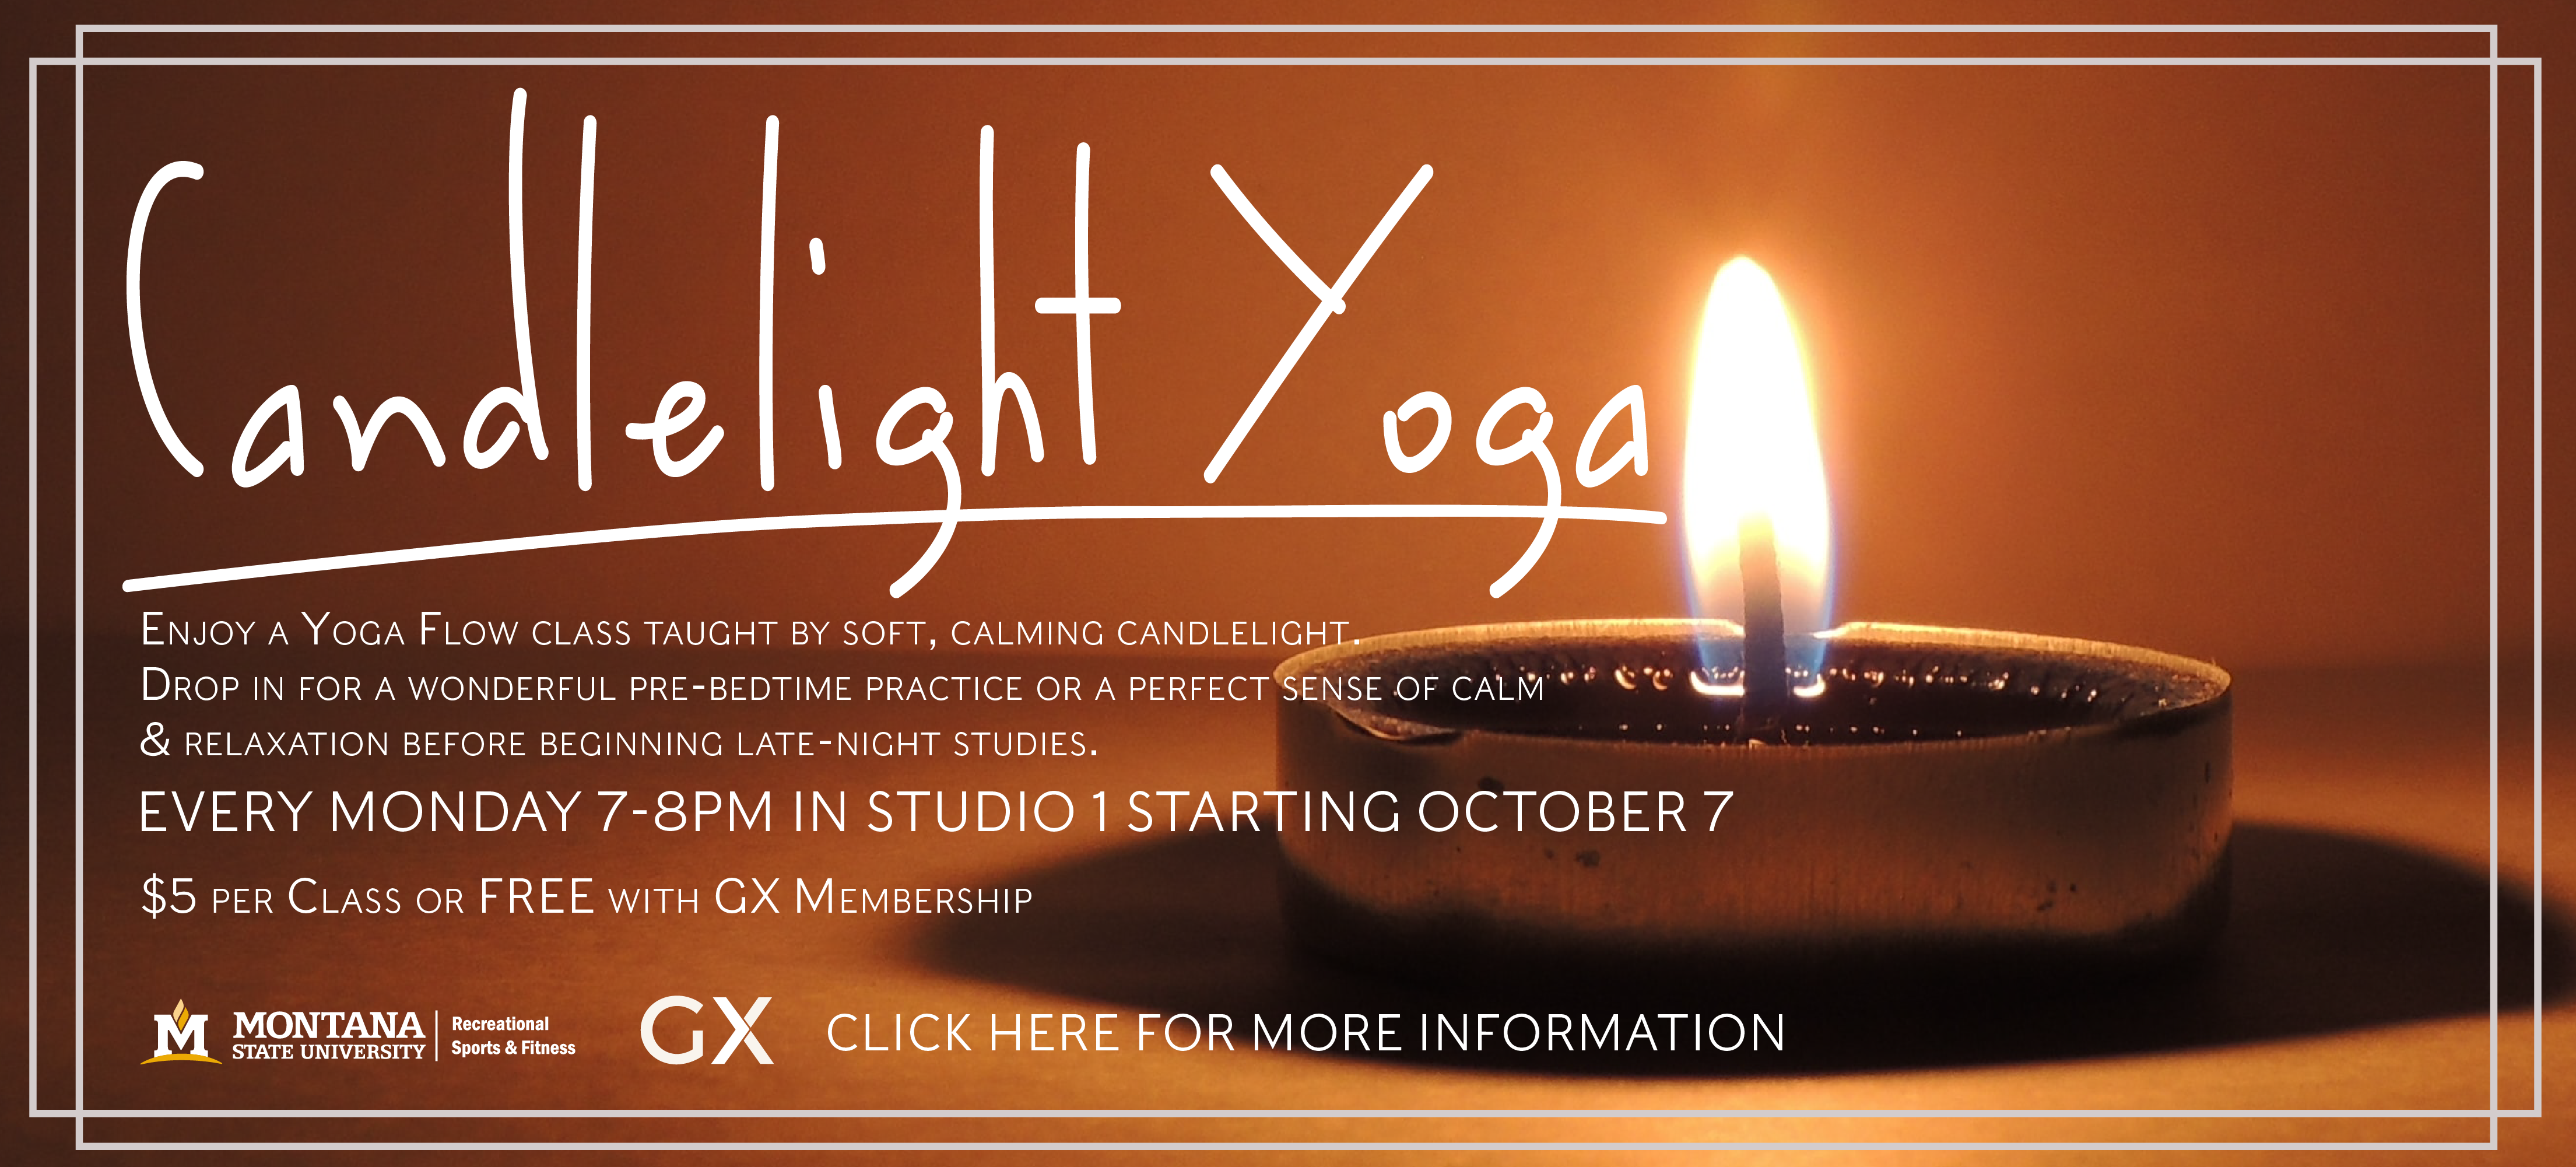 Beginning Oct 7, join us for a yoga flow class taught by candlelight.  Monday evenings from 7-8 in Studio 1.  $5 per class or free with GX membership.